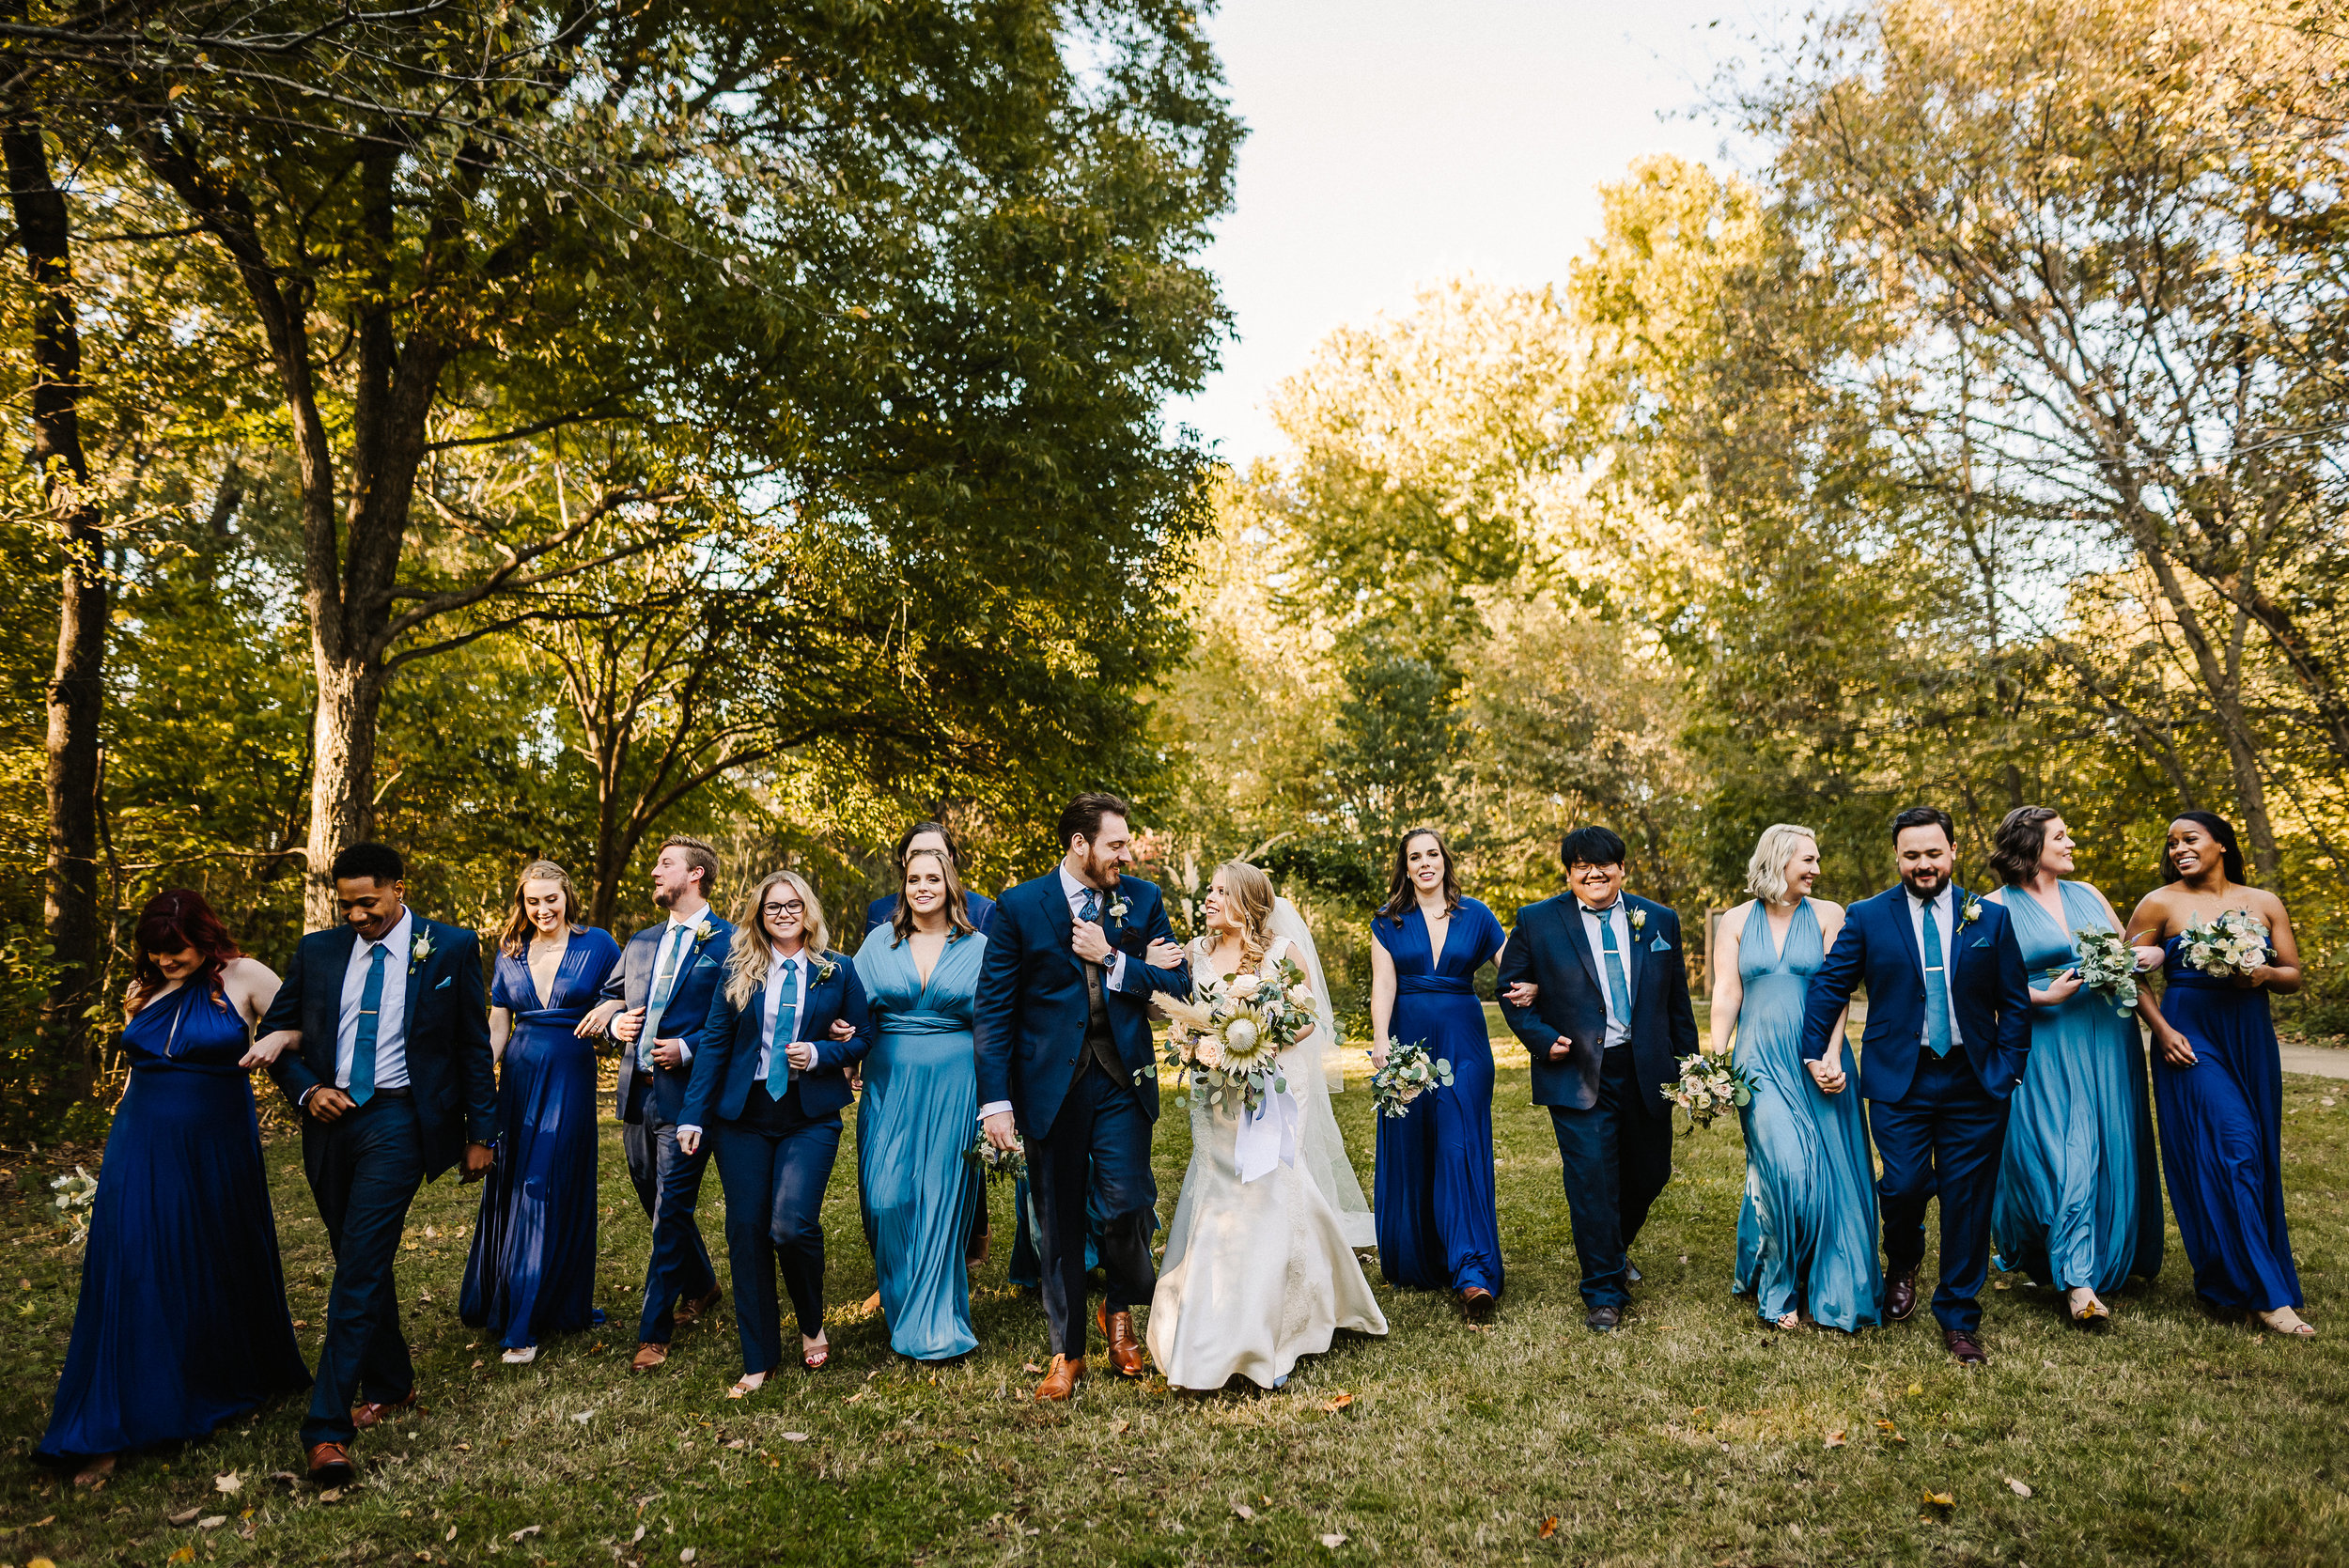 Lichterman Nature Center Wedding_La Croix Wedding_Ashley Benham Photography-279.jpg